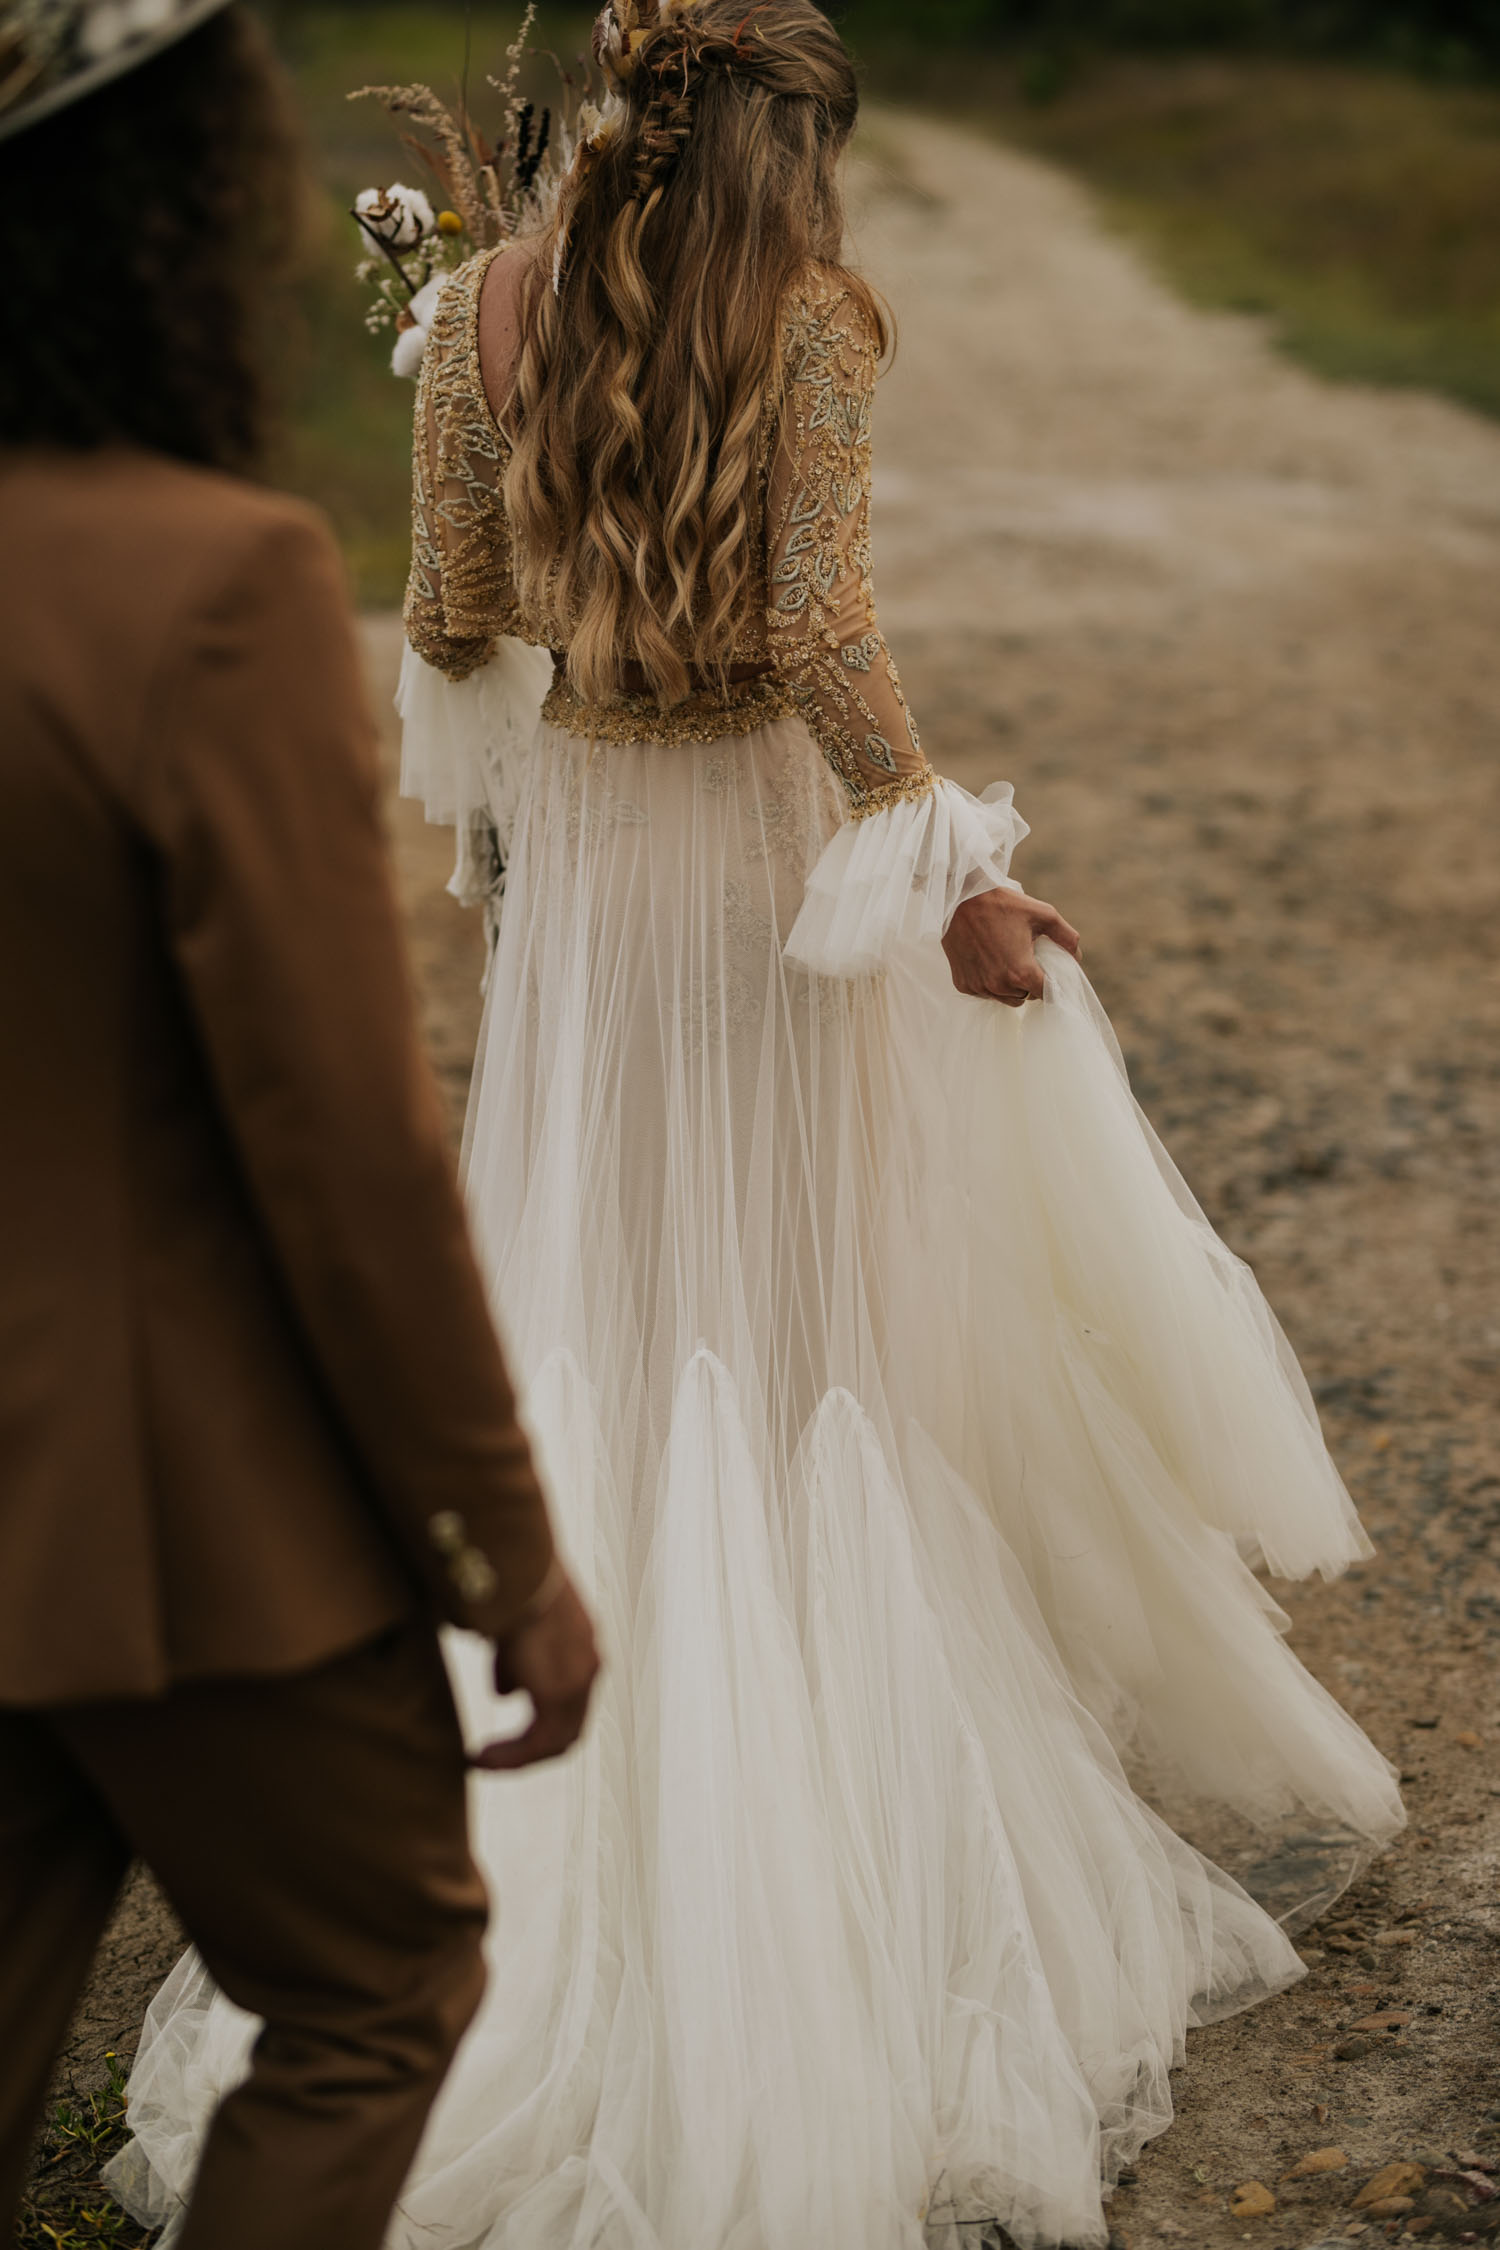 Boho bride wears feather ear cuff and hair piece and a wedding dress with flared long sleeves, sheer skirt and gold detailed top with plait in hair and cotton plant in bouquet